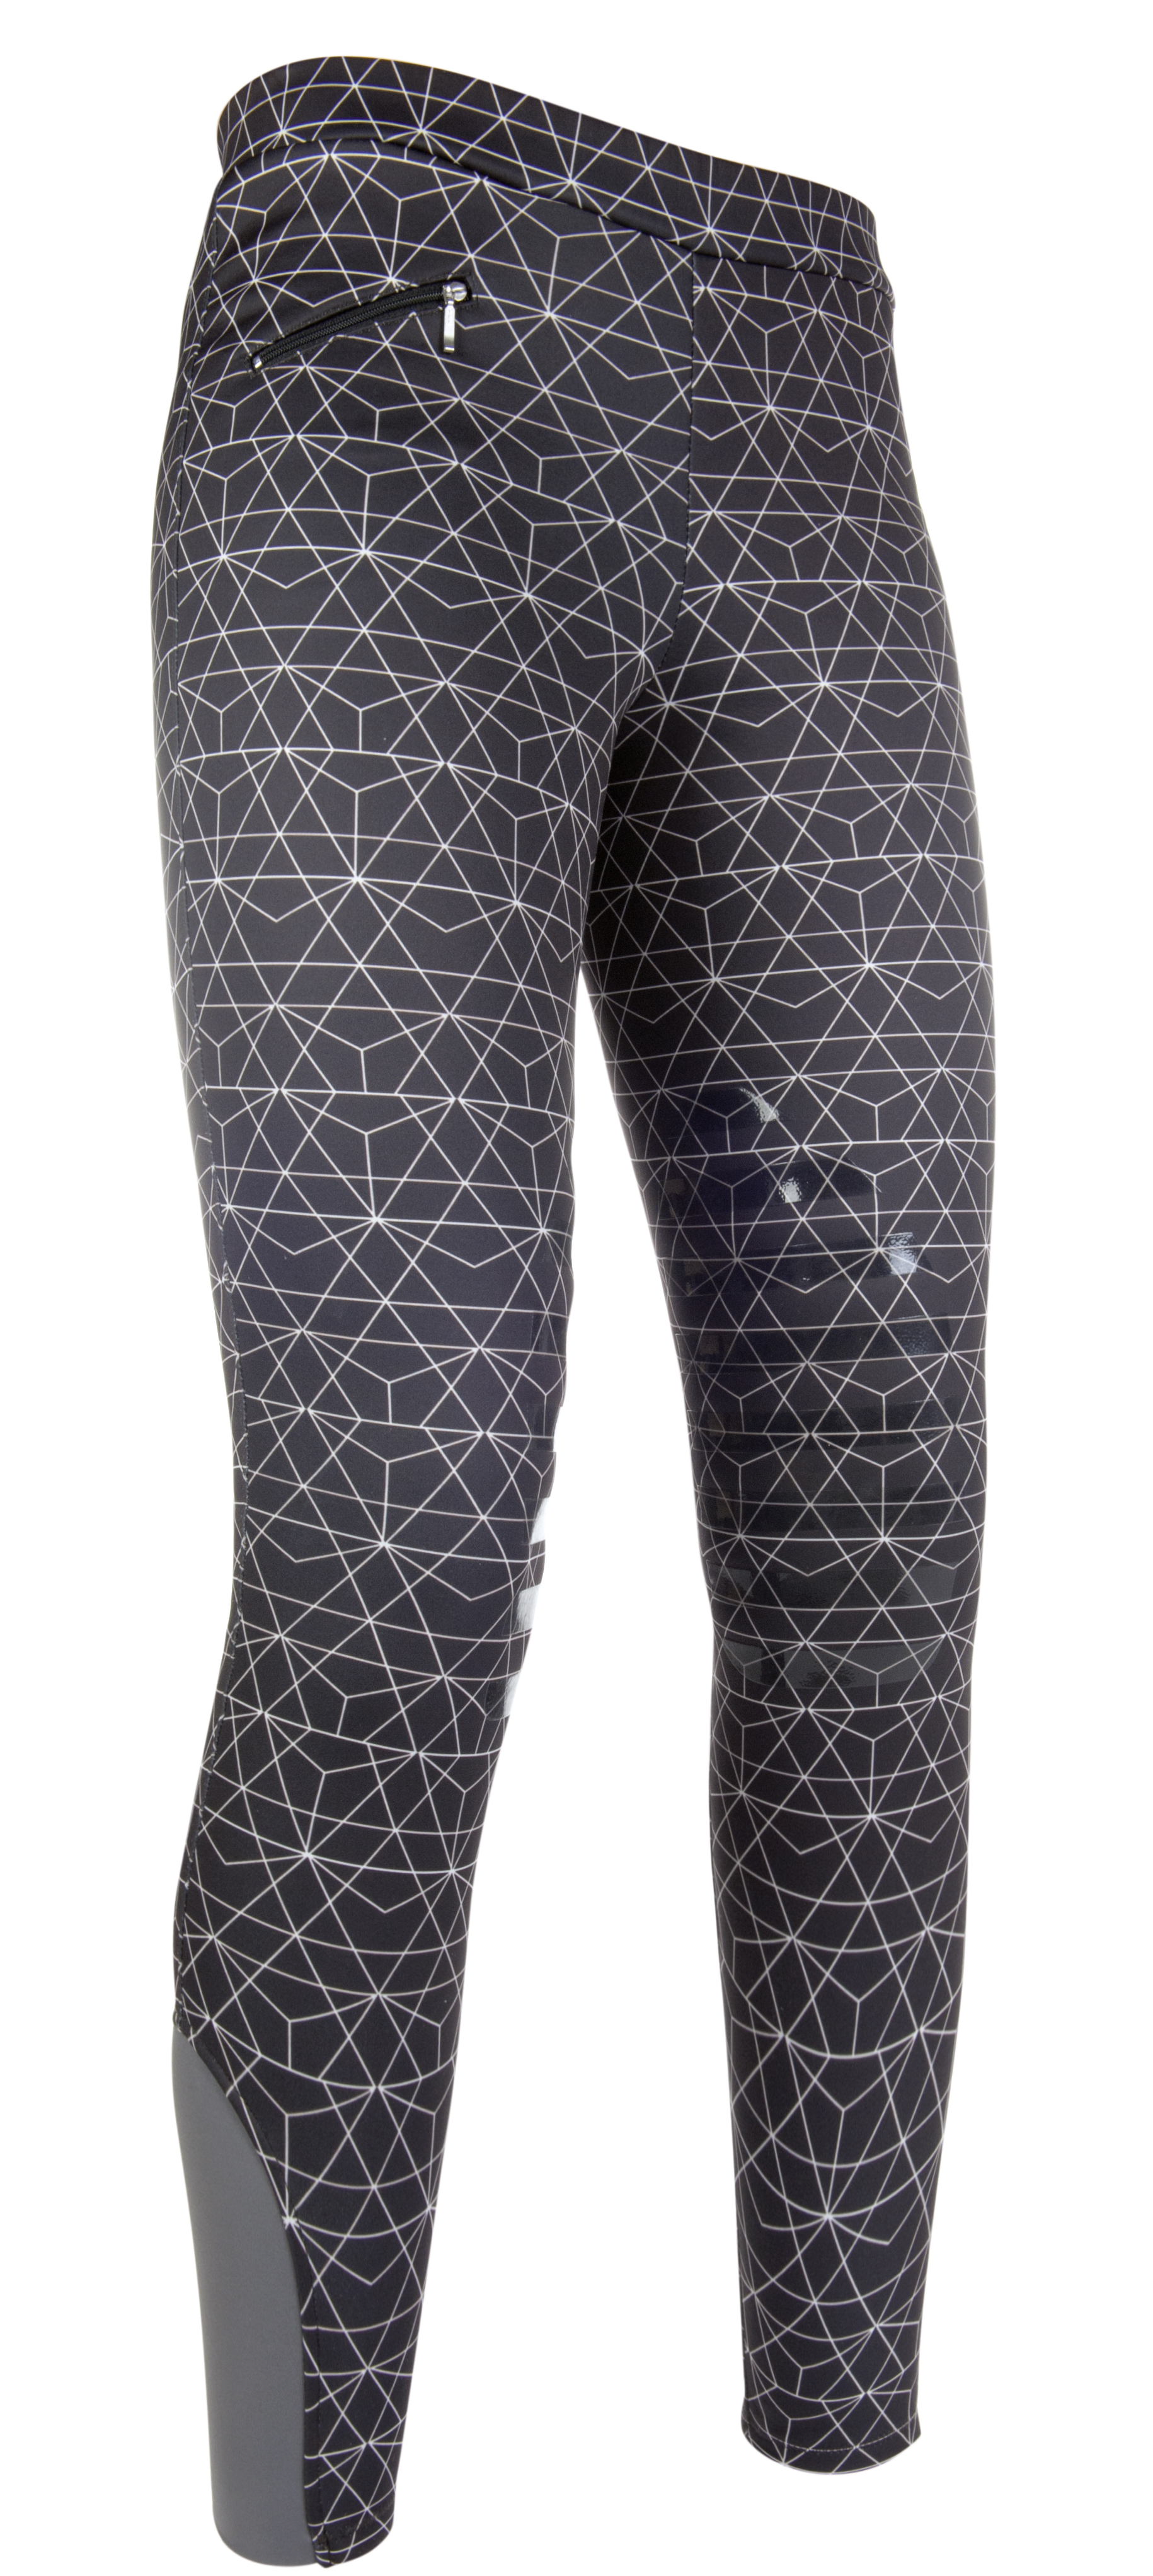 Cavallino marino riding leggings piemont silicone knee patch.